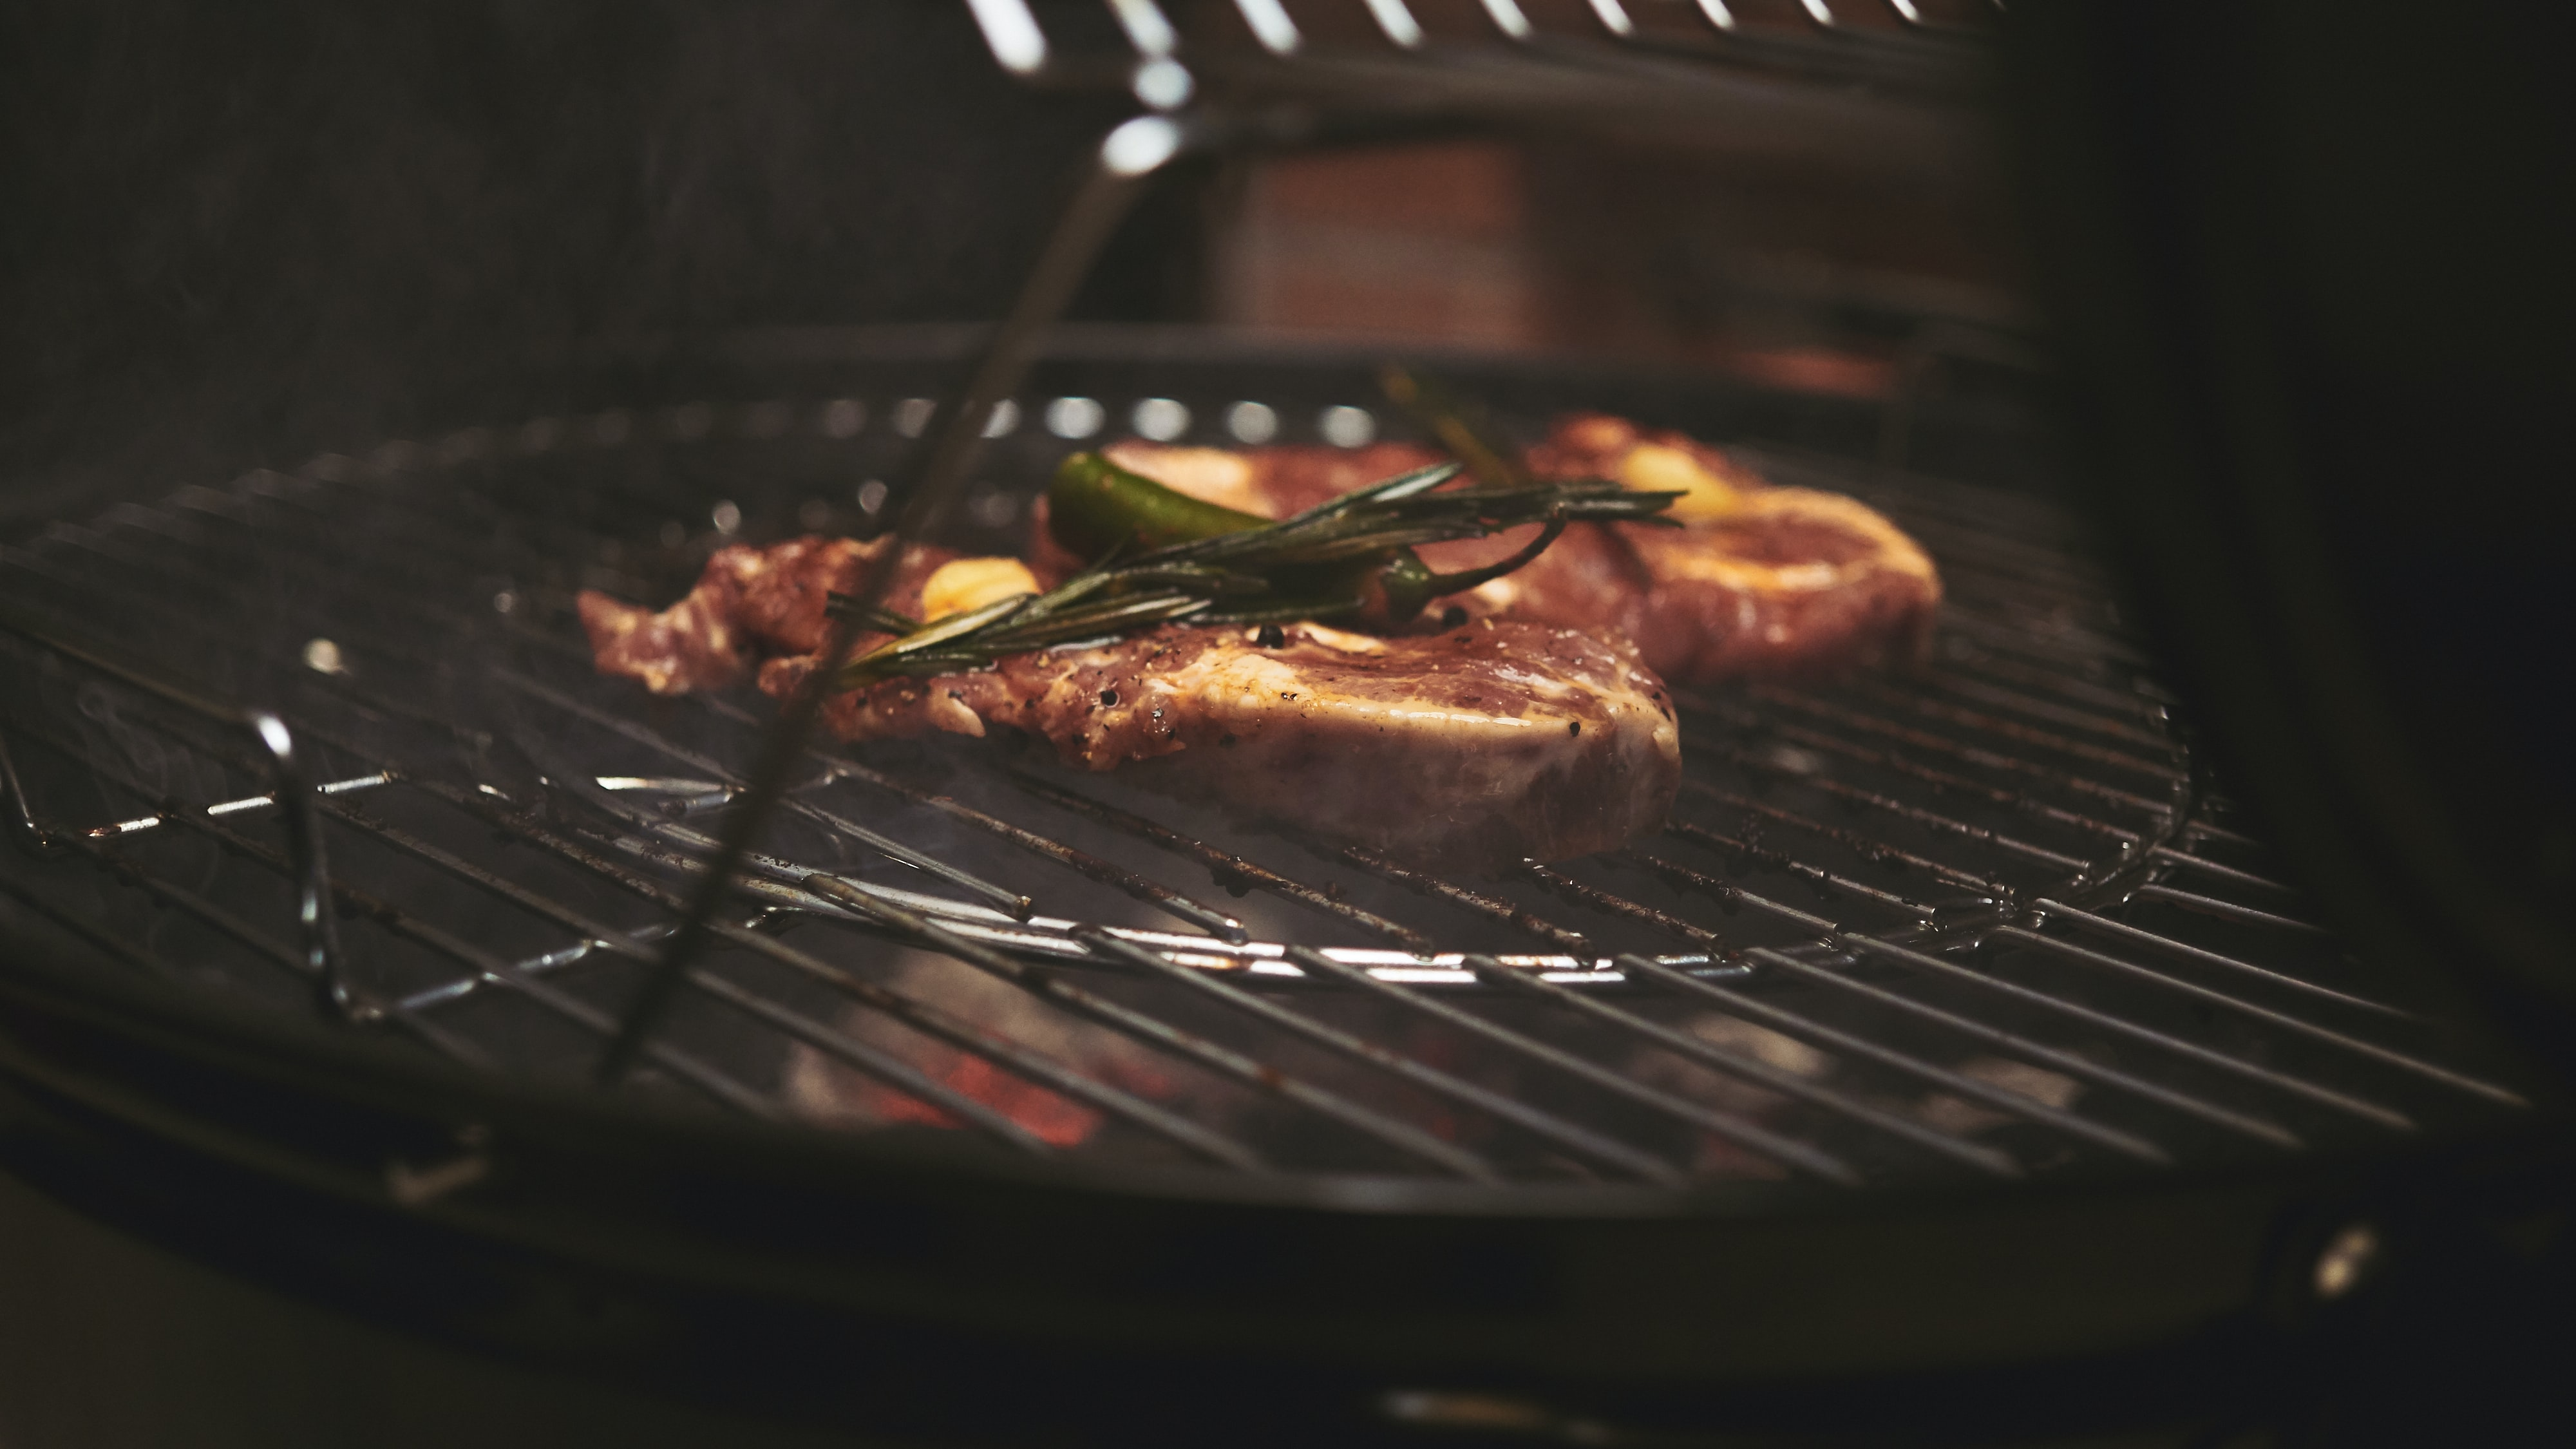 selective focus photography of grilled meat on charcoal grill